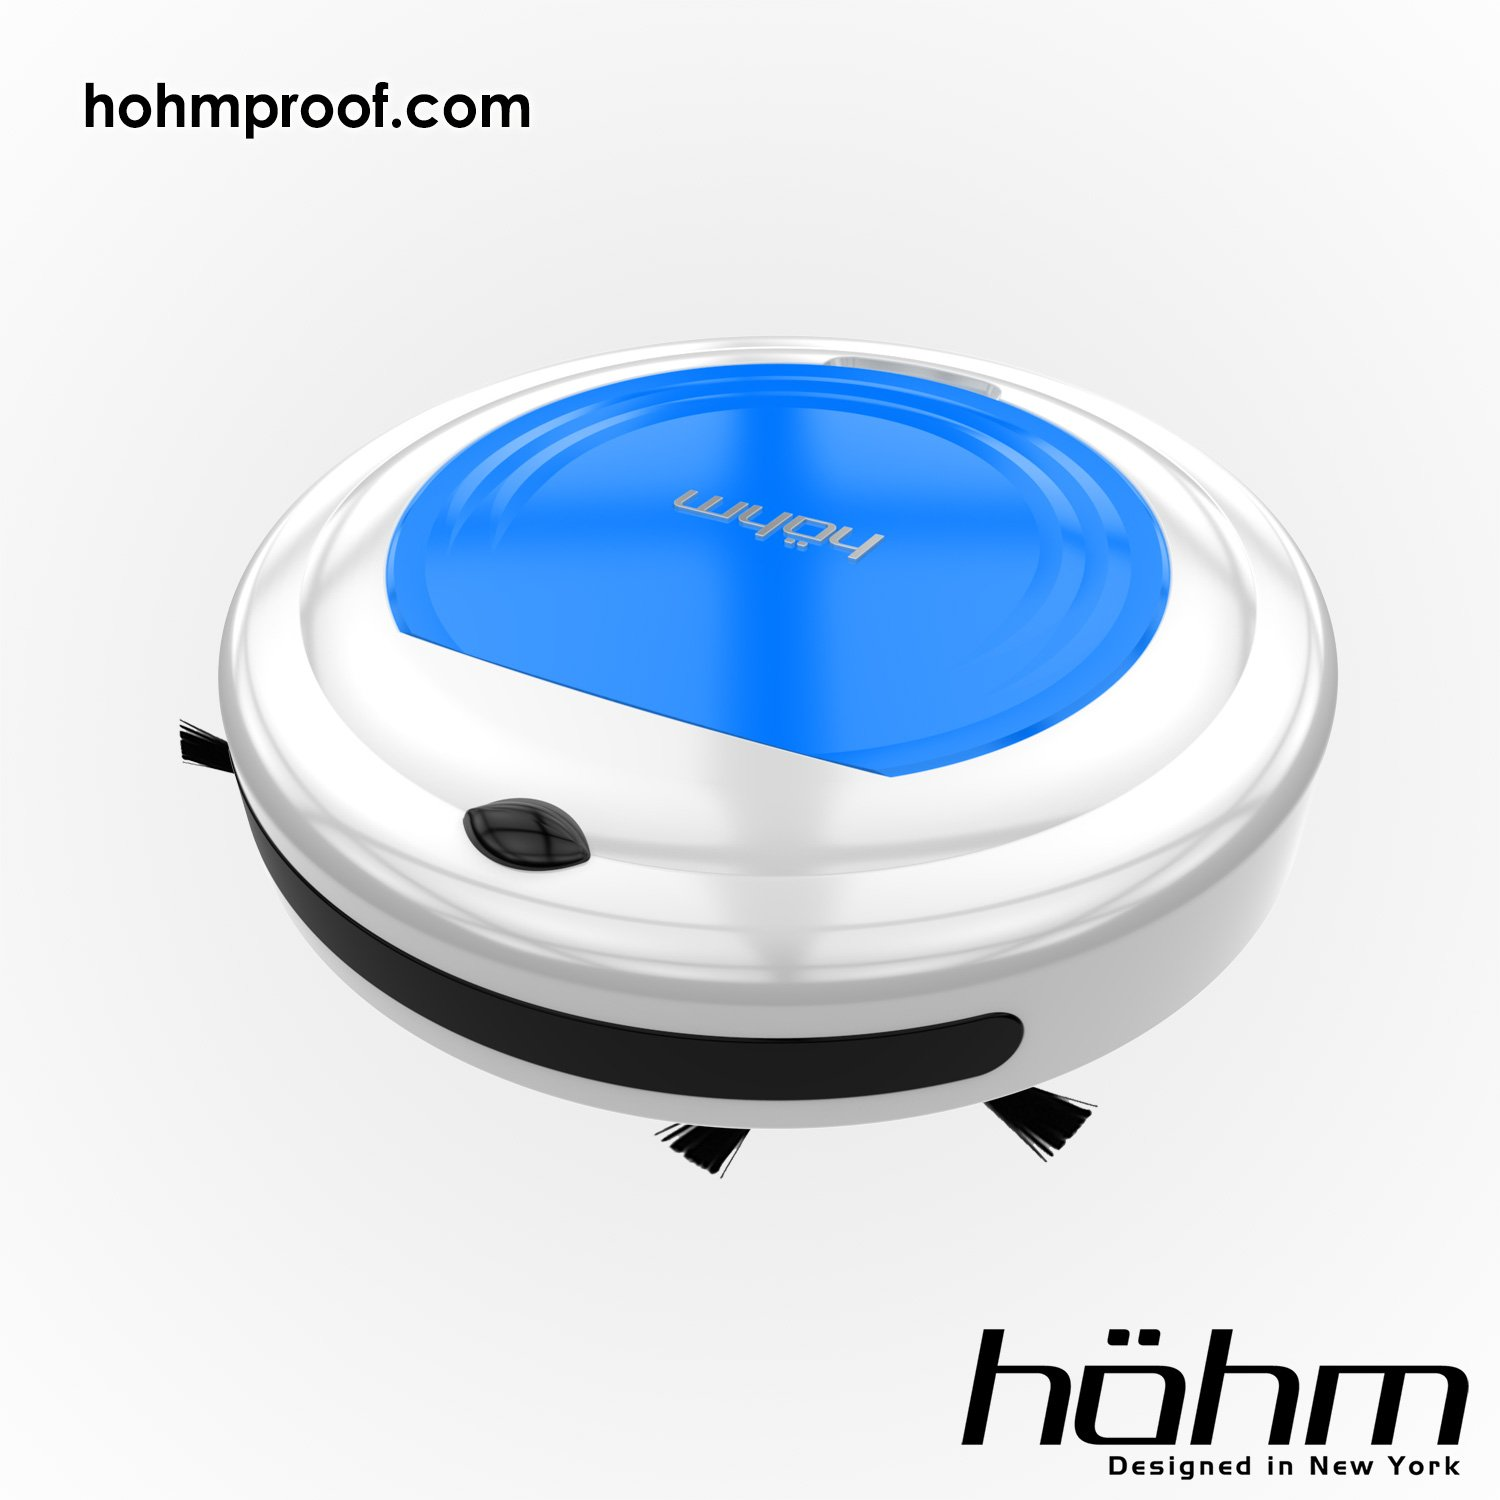 HÖHM DIRTBOT 2.0 Robotic Vacuum Cleaner Blue